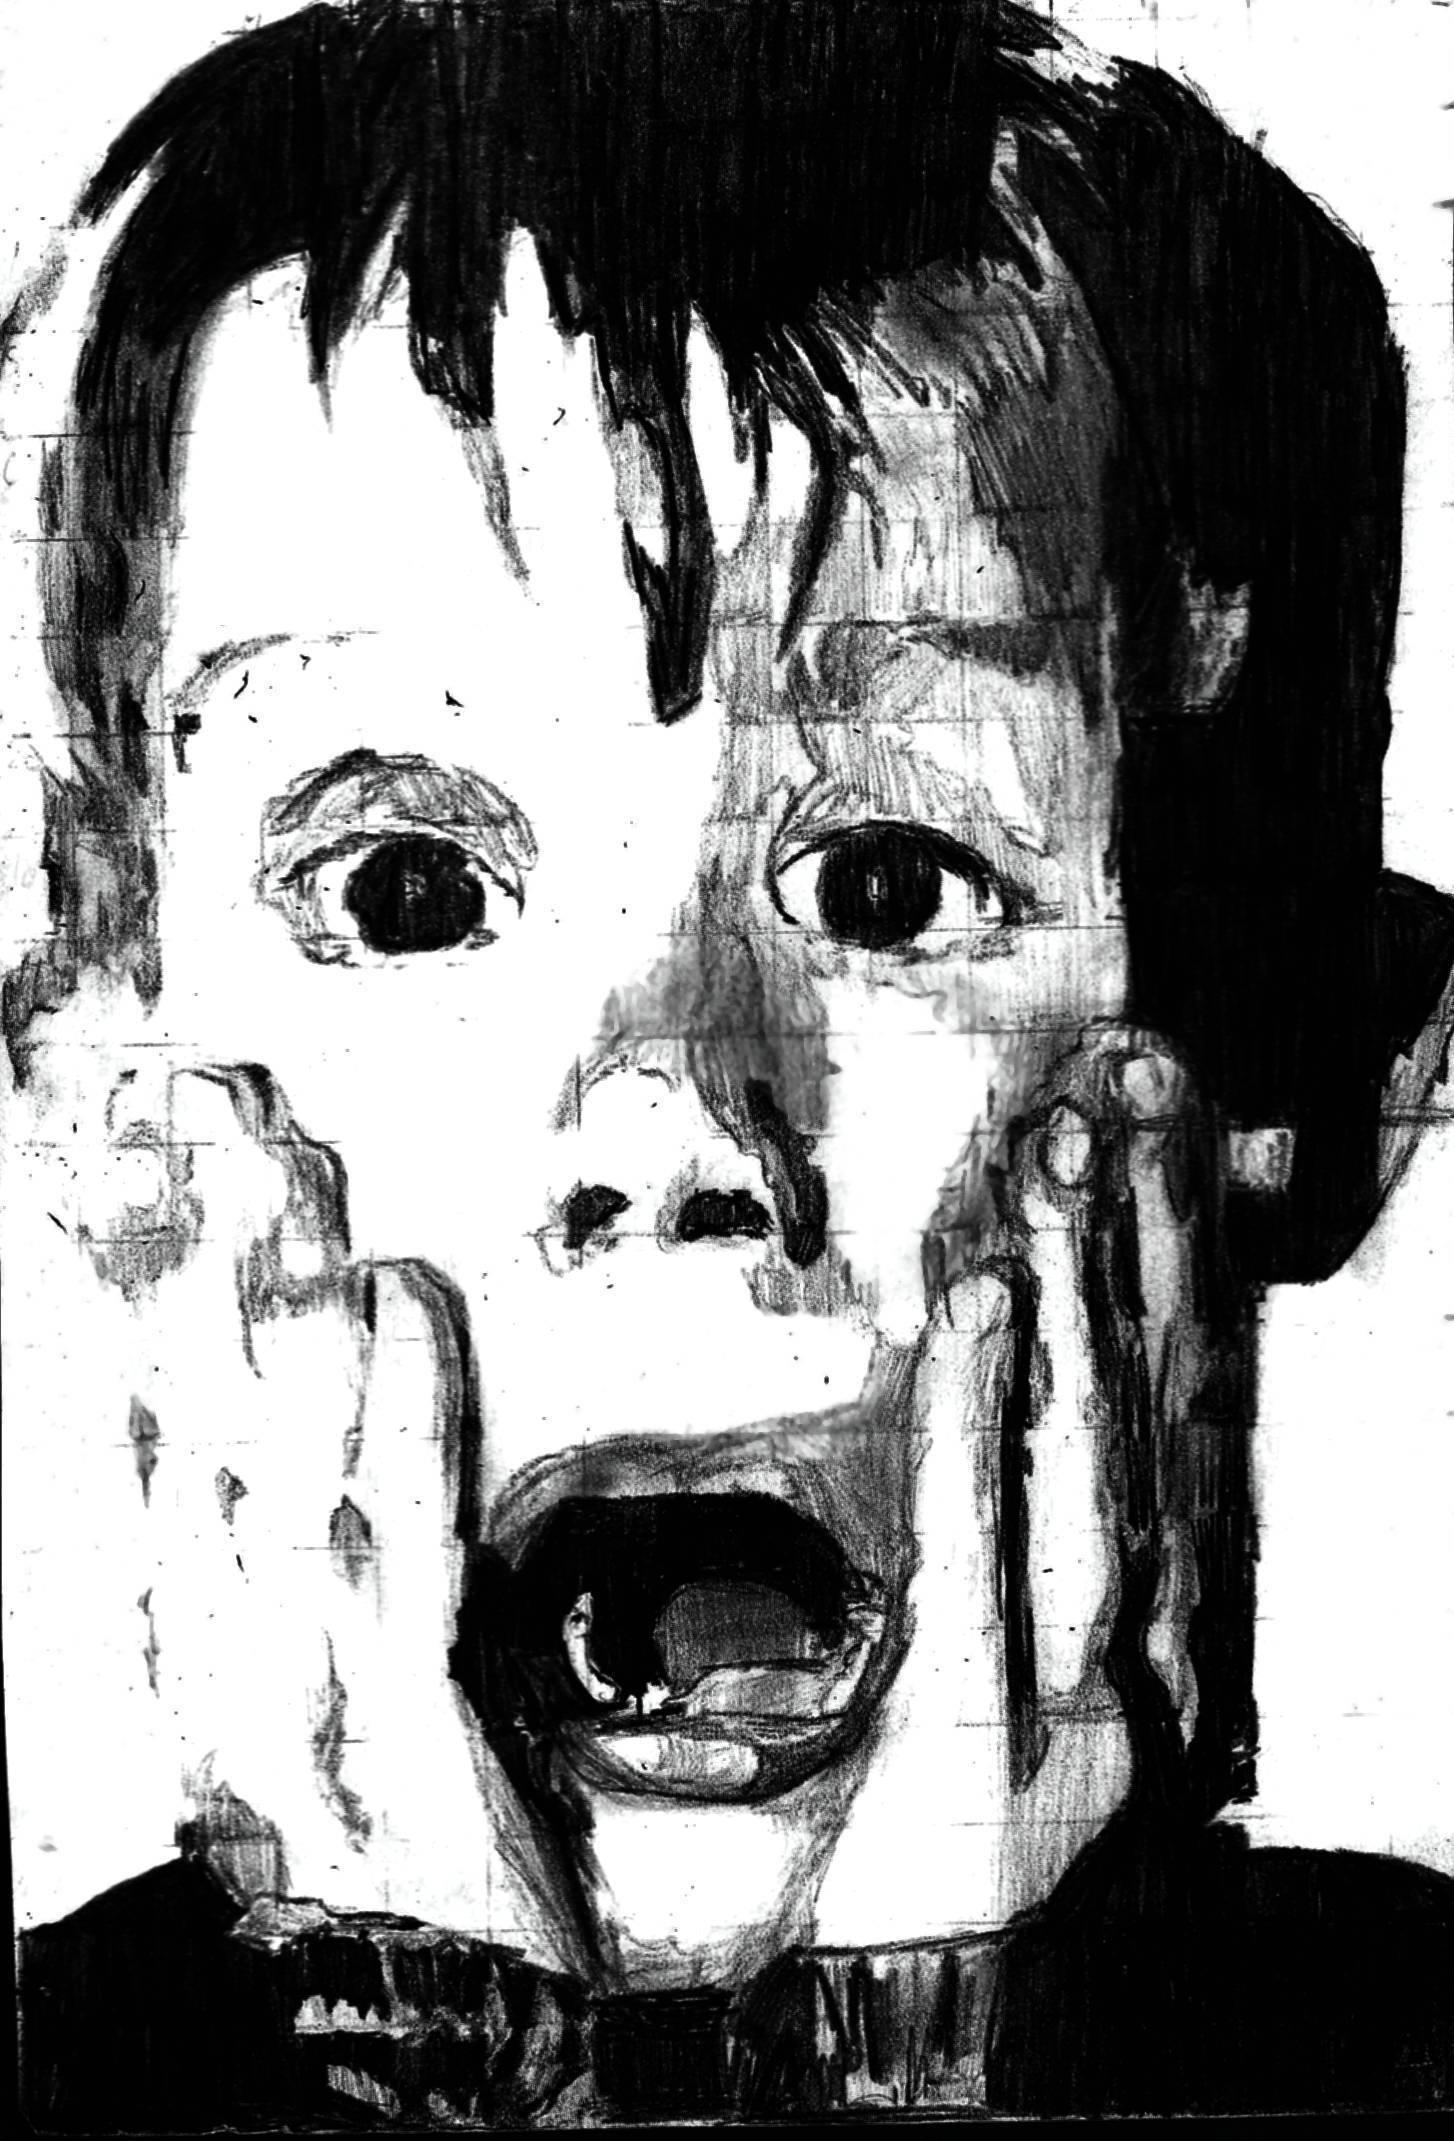 Home Alone Grid Version Expressions Sketch Scared Aah Emotional | Face Shapes 101